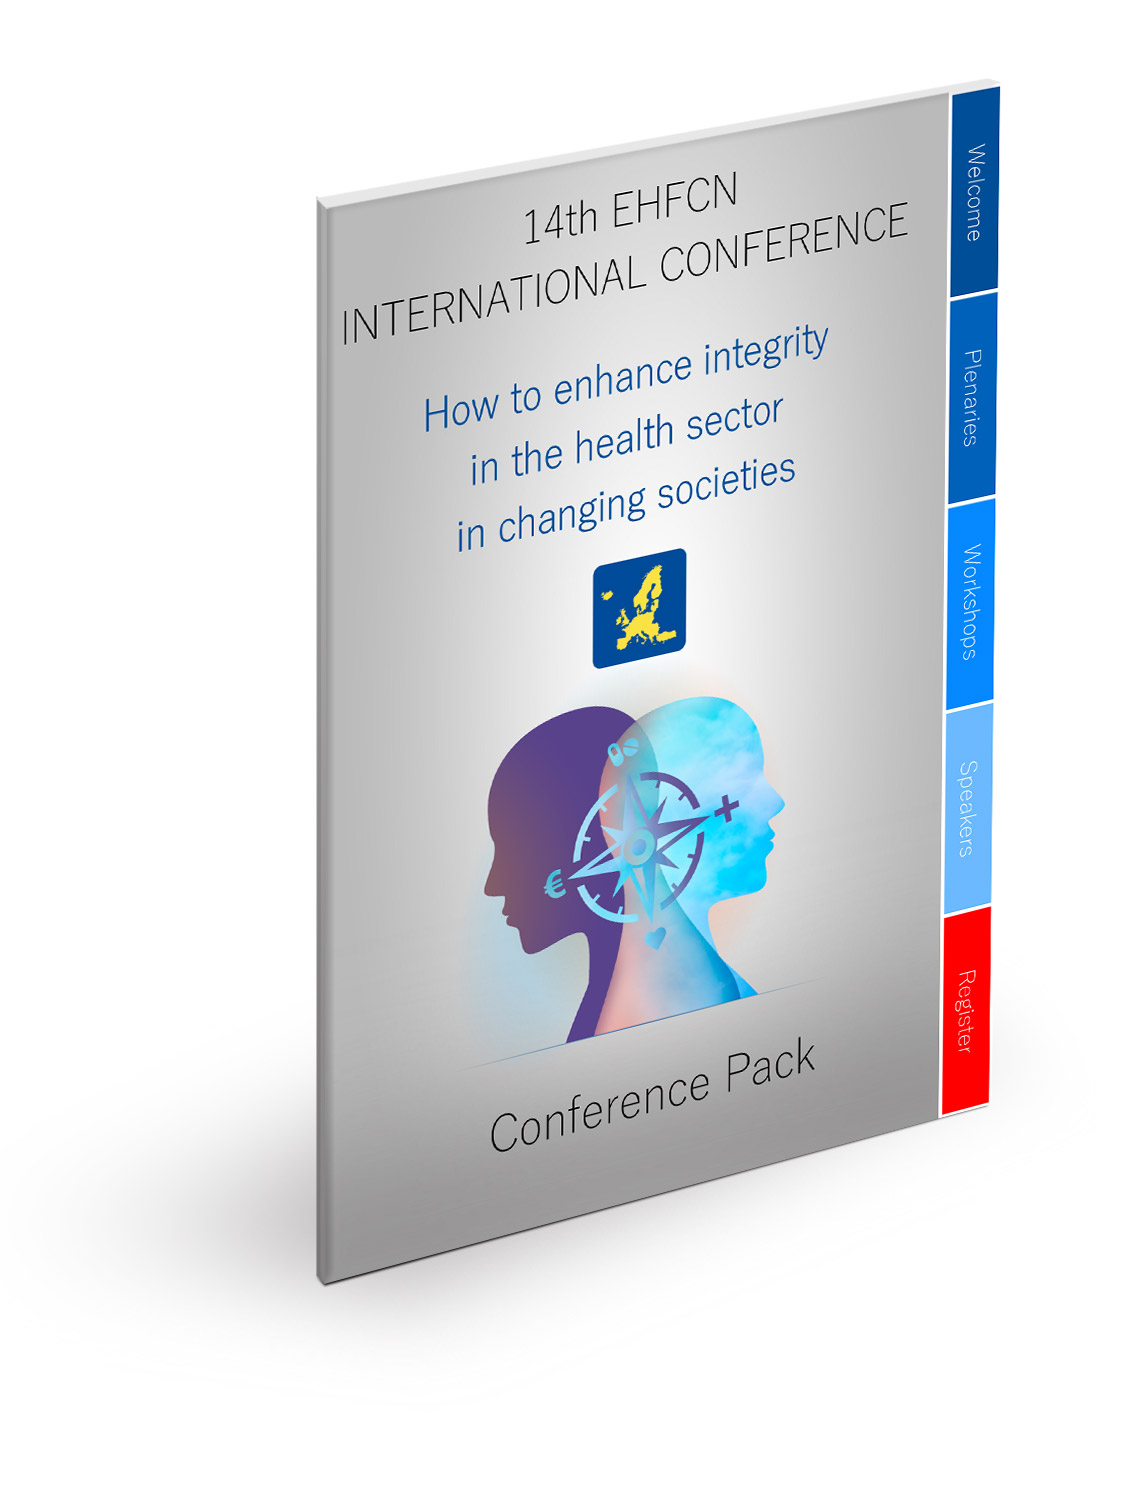 Download FULL CONFERENCE PACK